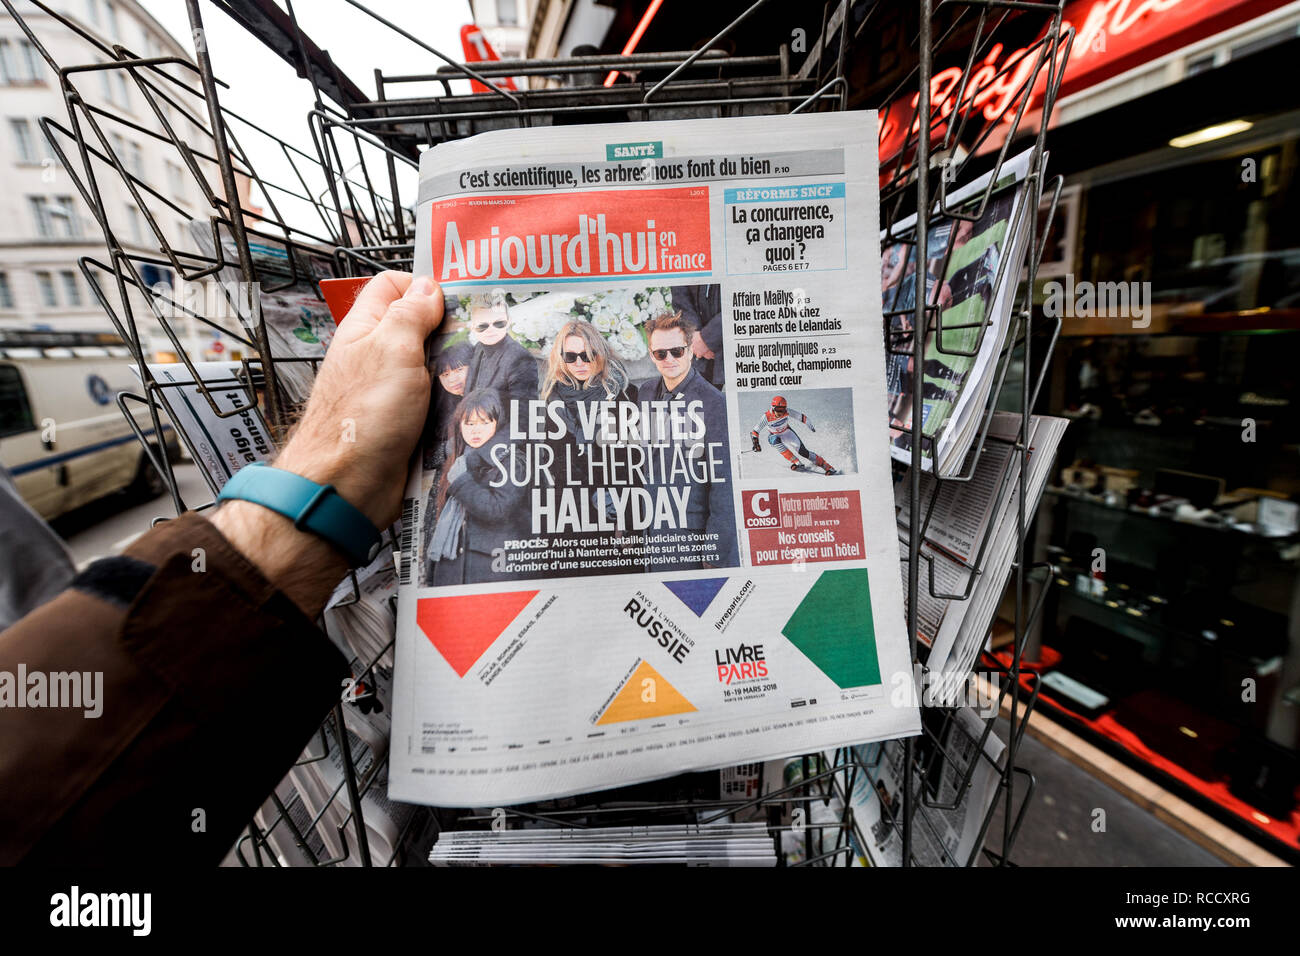 PARIS, FRANCE - MAR 15, 2018: French Aujourd'hui magazine with portrait of French singer Johnny Hallyday during the money dispute scandal   - Stock Image